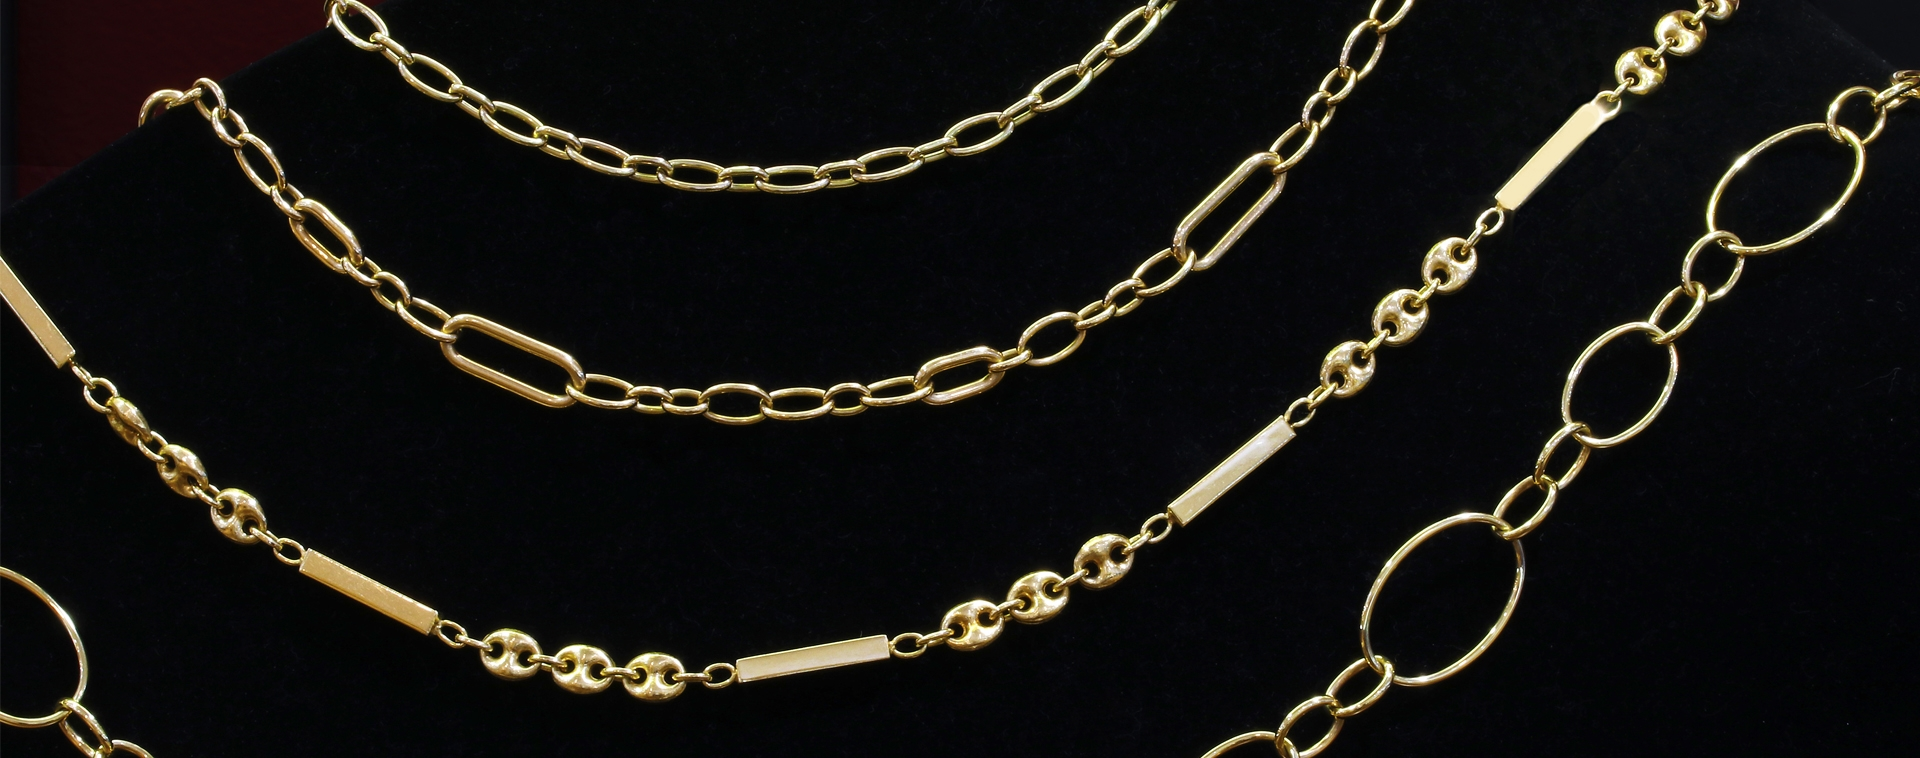 Gold Link Chains